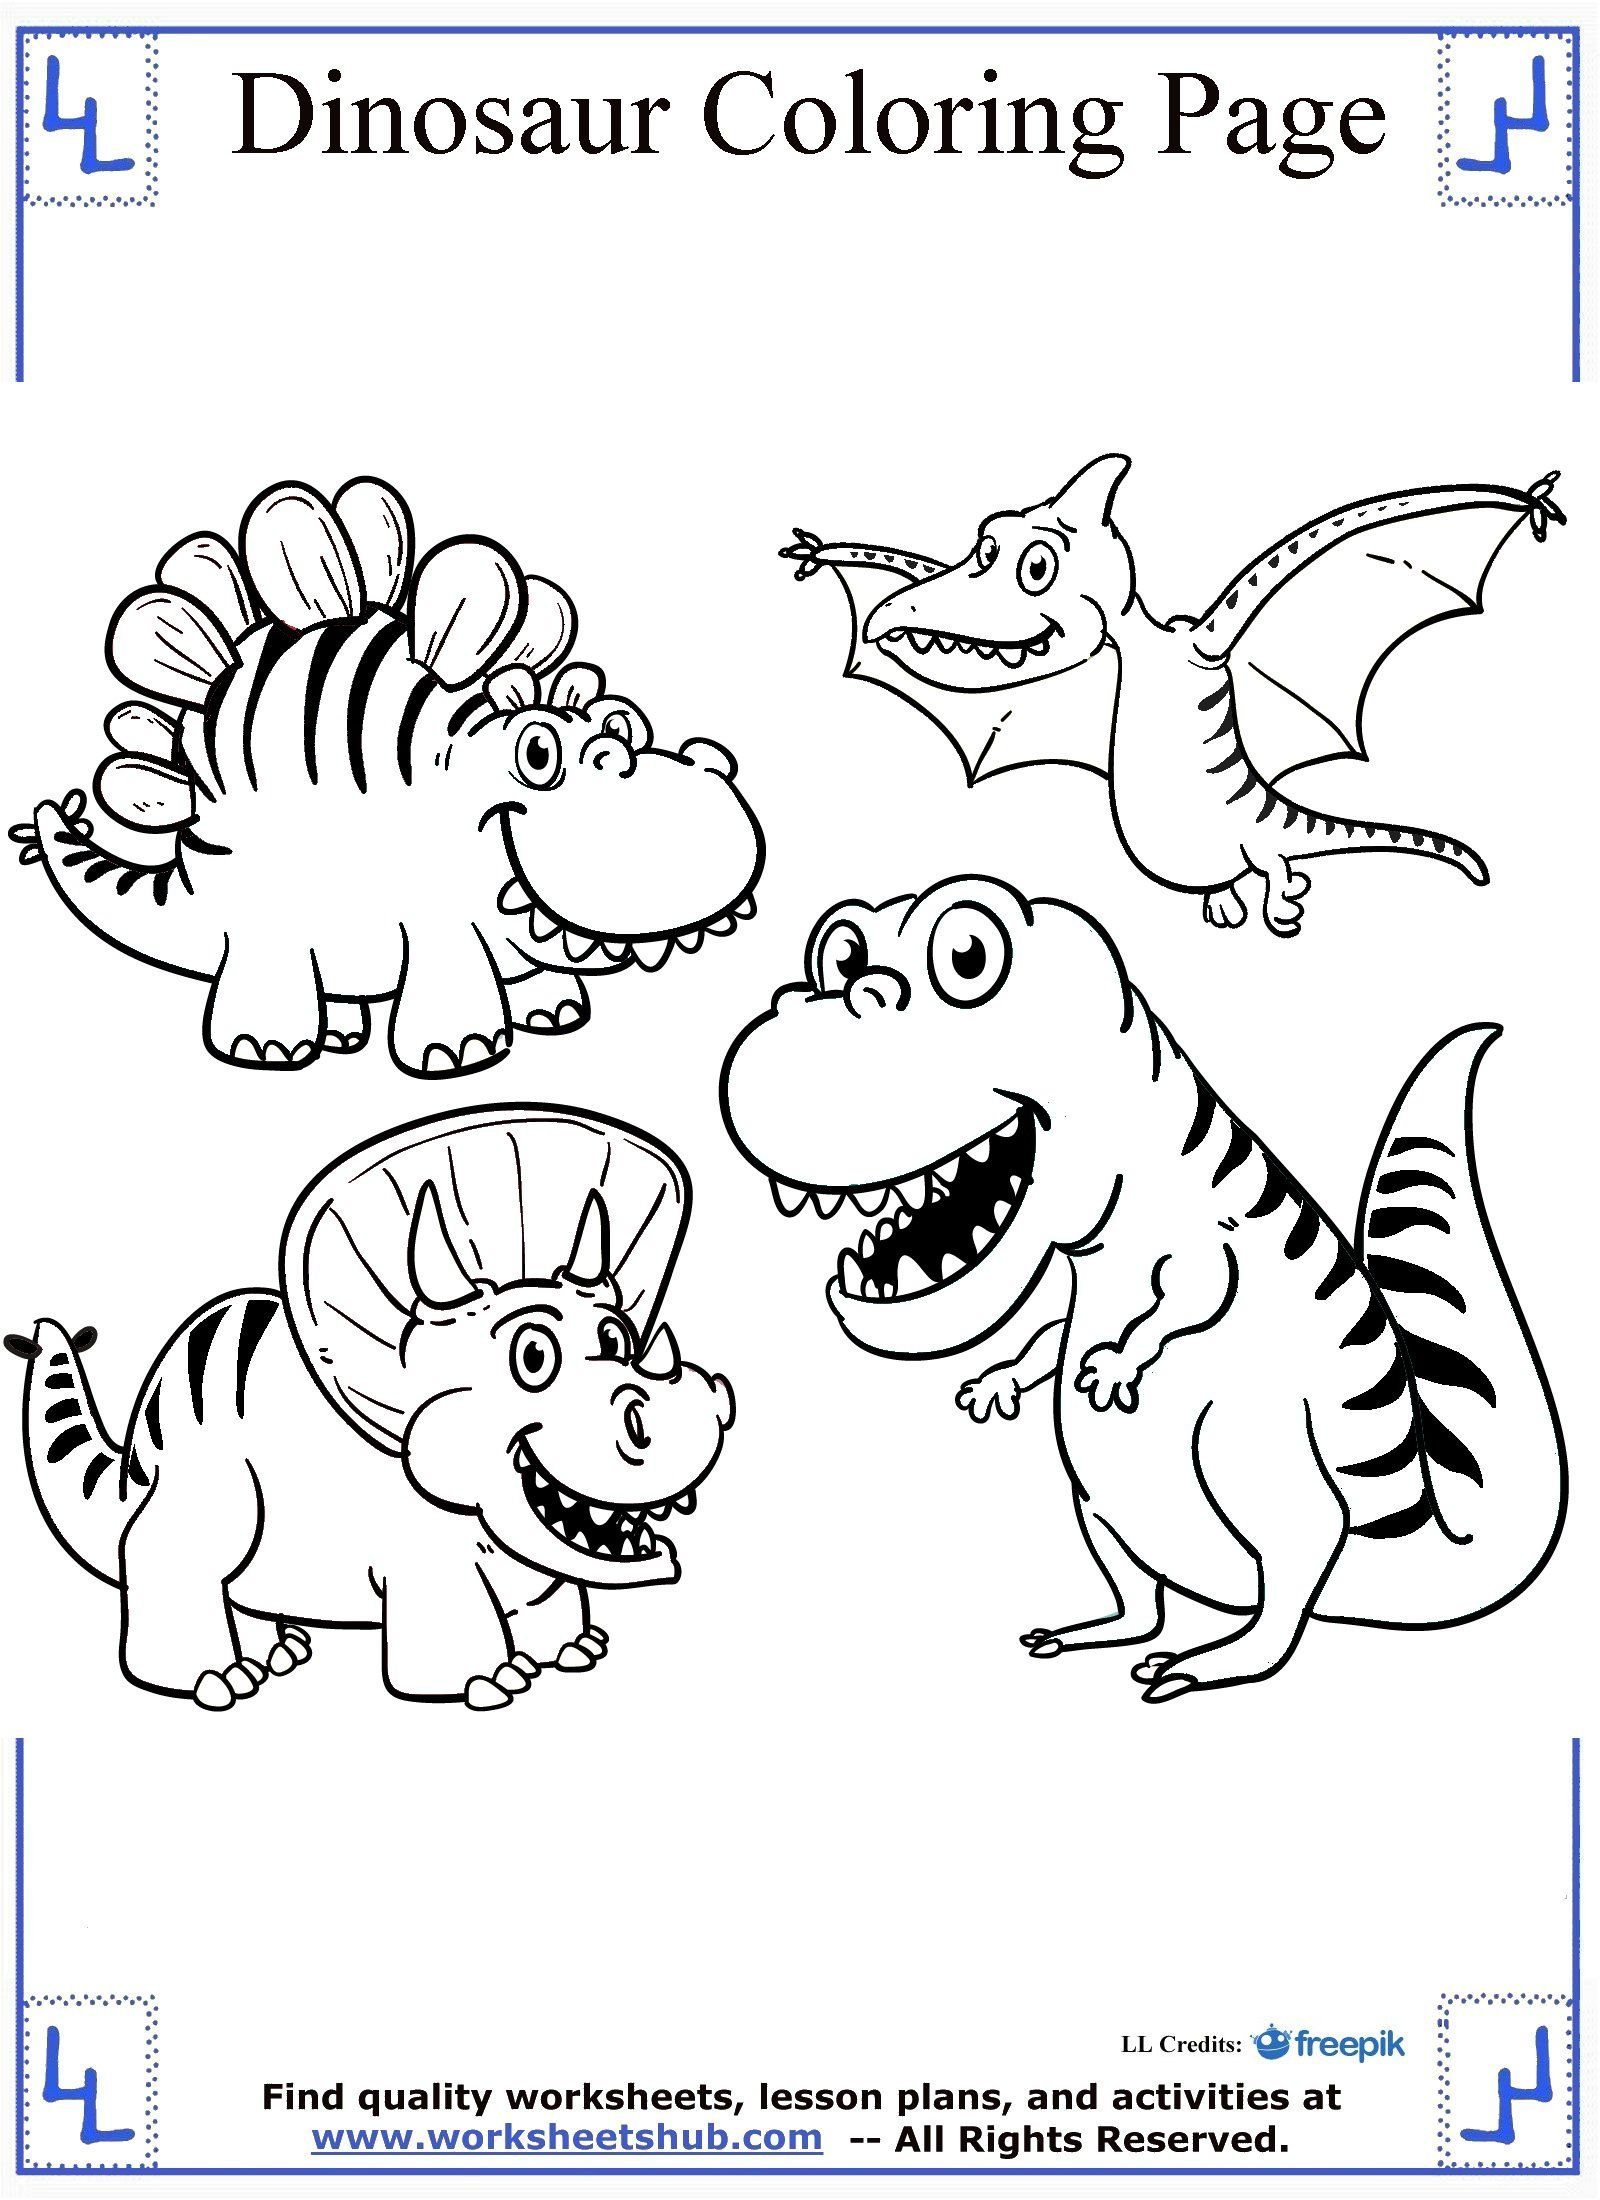 Coloring pages dinosaurs and dragons - Cartoon Dinosaurs Coloring Page